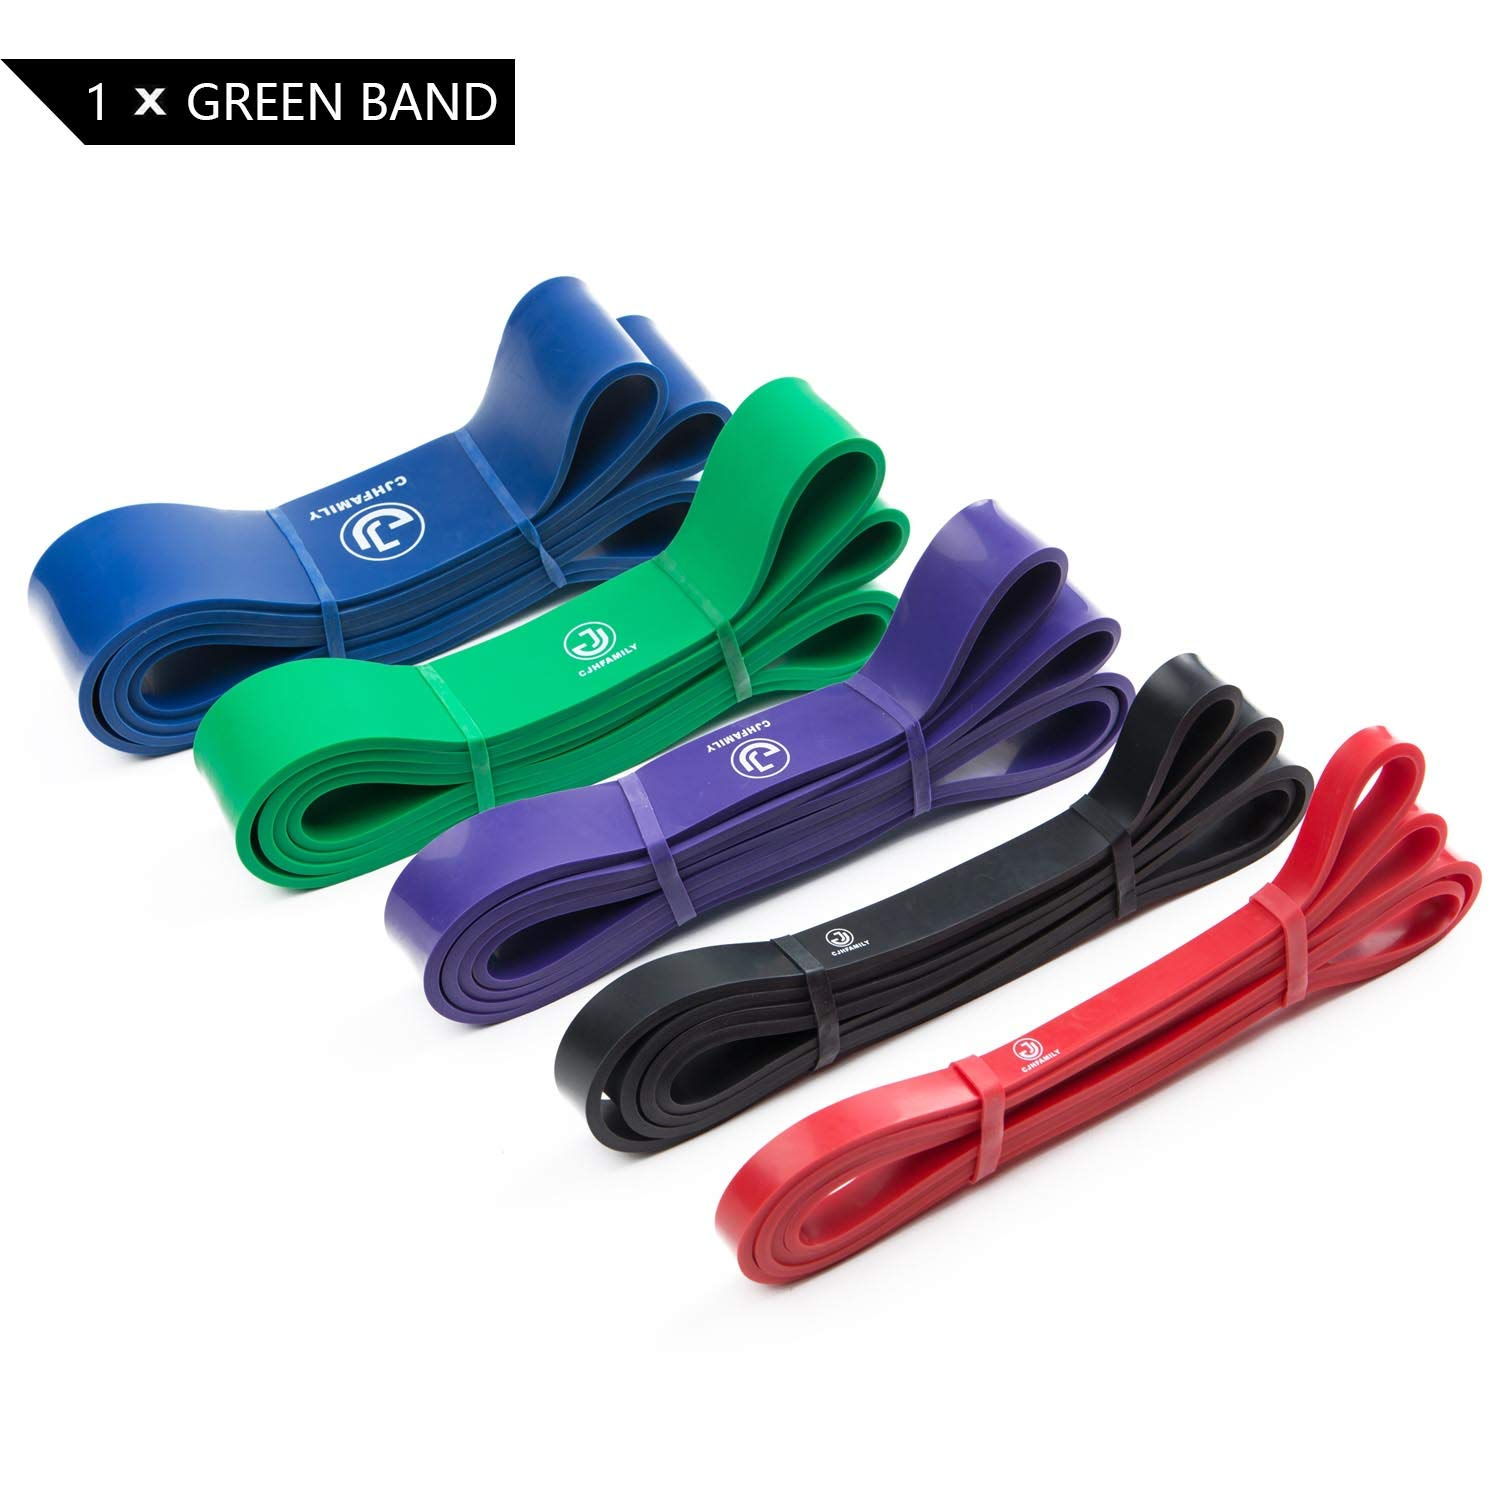 CJHFAMILY Pull up Assist Band Exercise Resistance Bands for Workout Body Stretch Powerlifting -Single Band or Set of 4